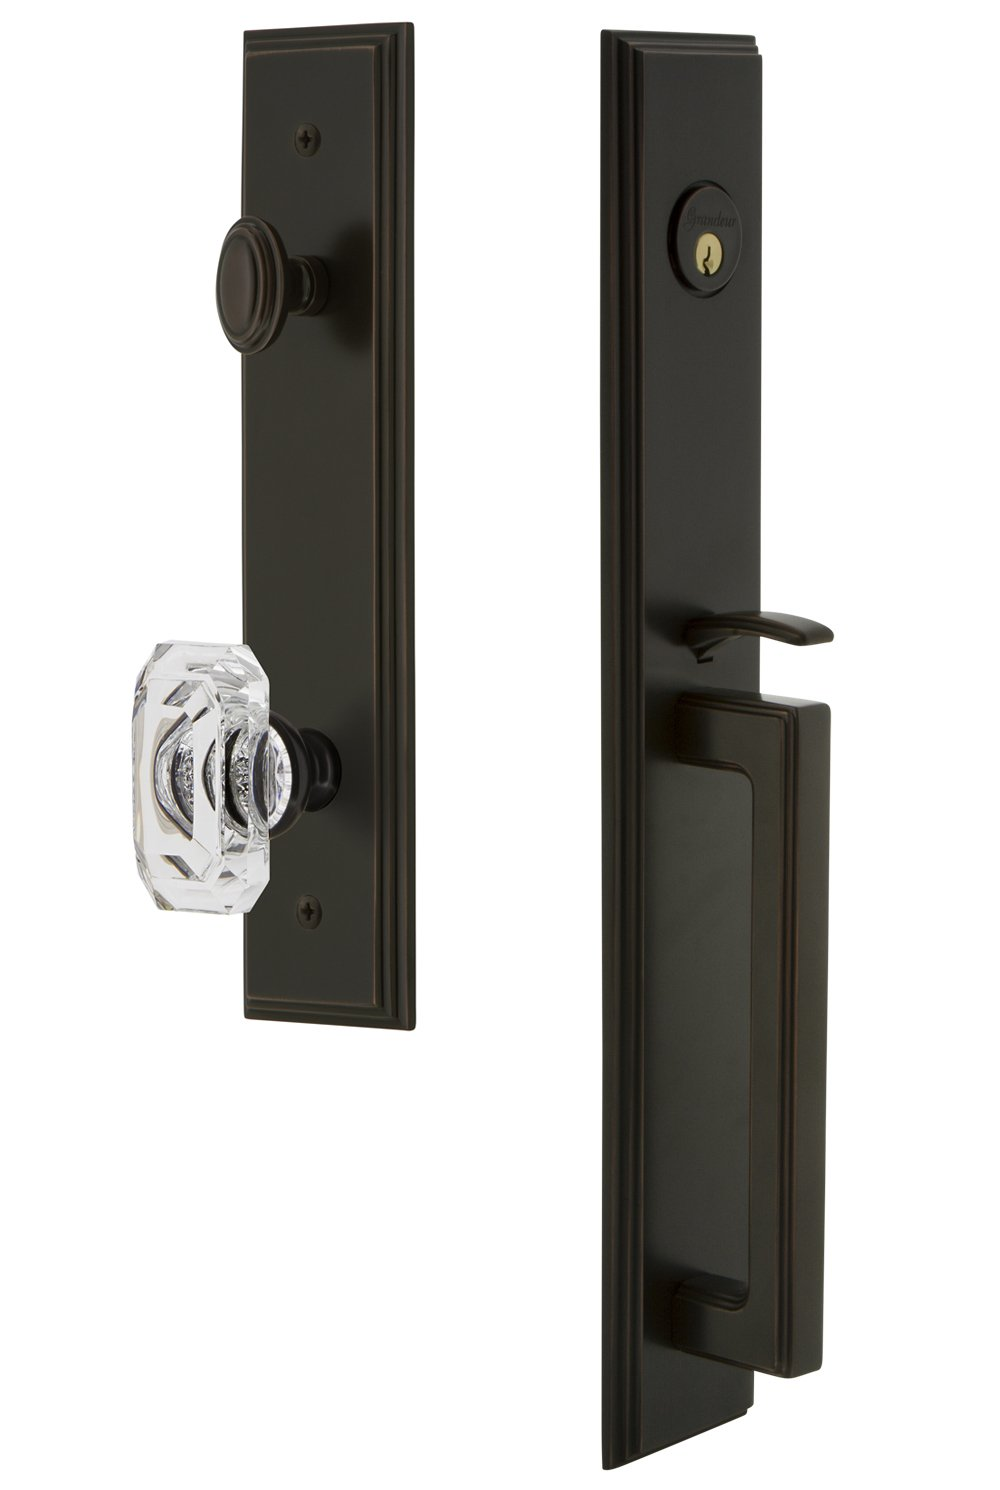 Grandeur 848832 Hardware Carre One-Piece Dummy Handleset with D Grip and Baguette Clear Crystal Knob in Satin Nickel